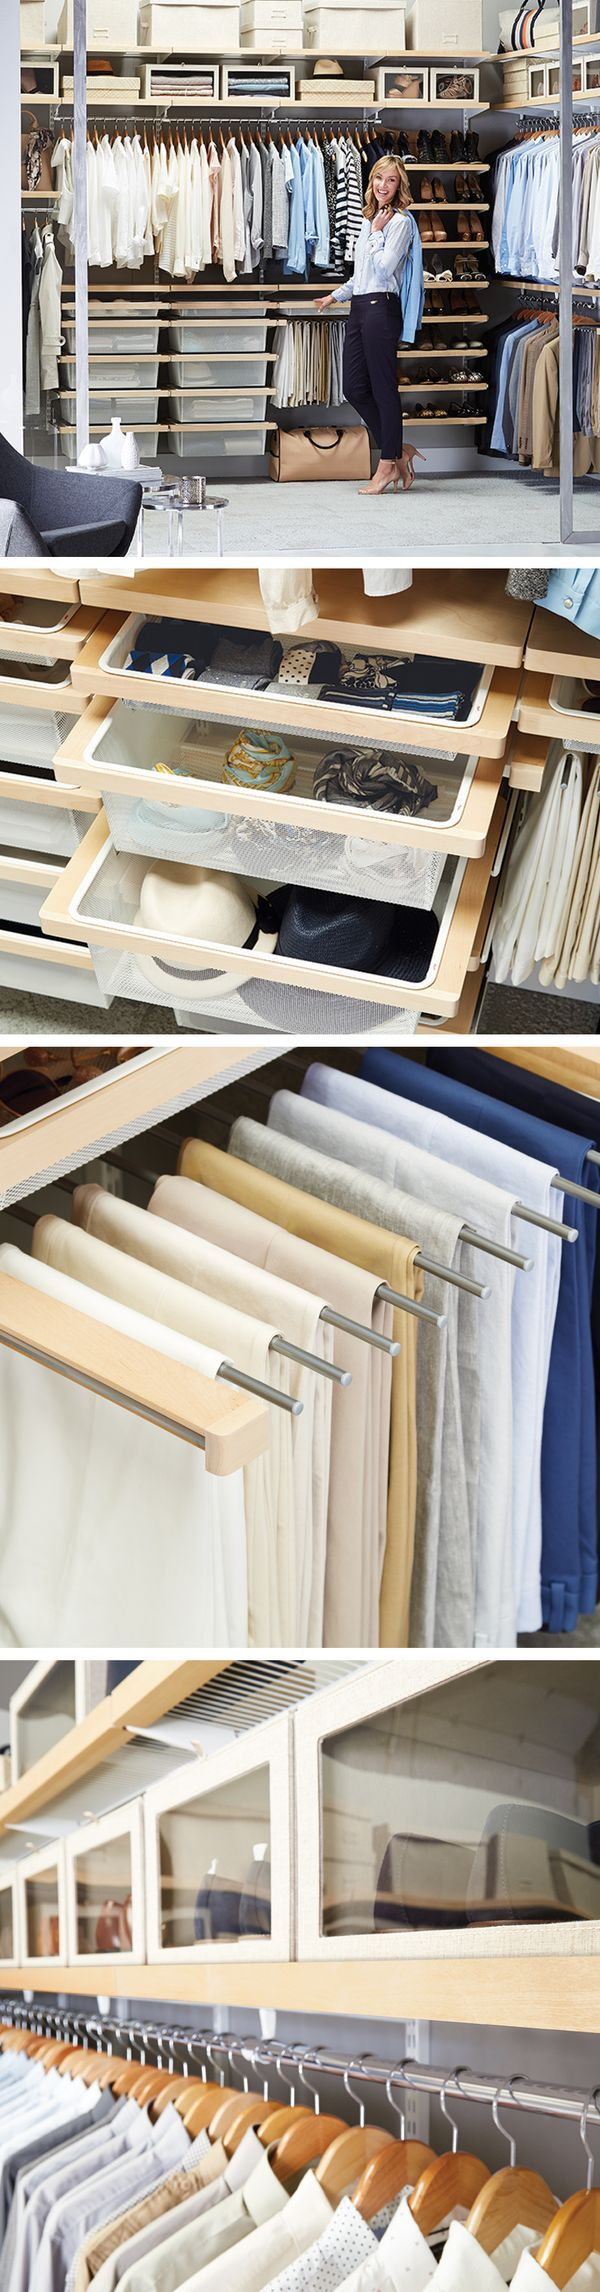 Anything and everything - designed with elfa, organized by you. ... #Design #Closets #Wardrobes